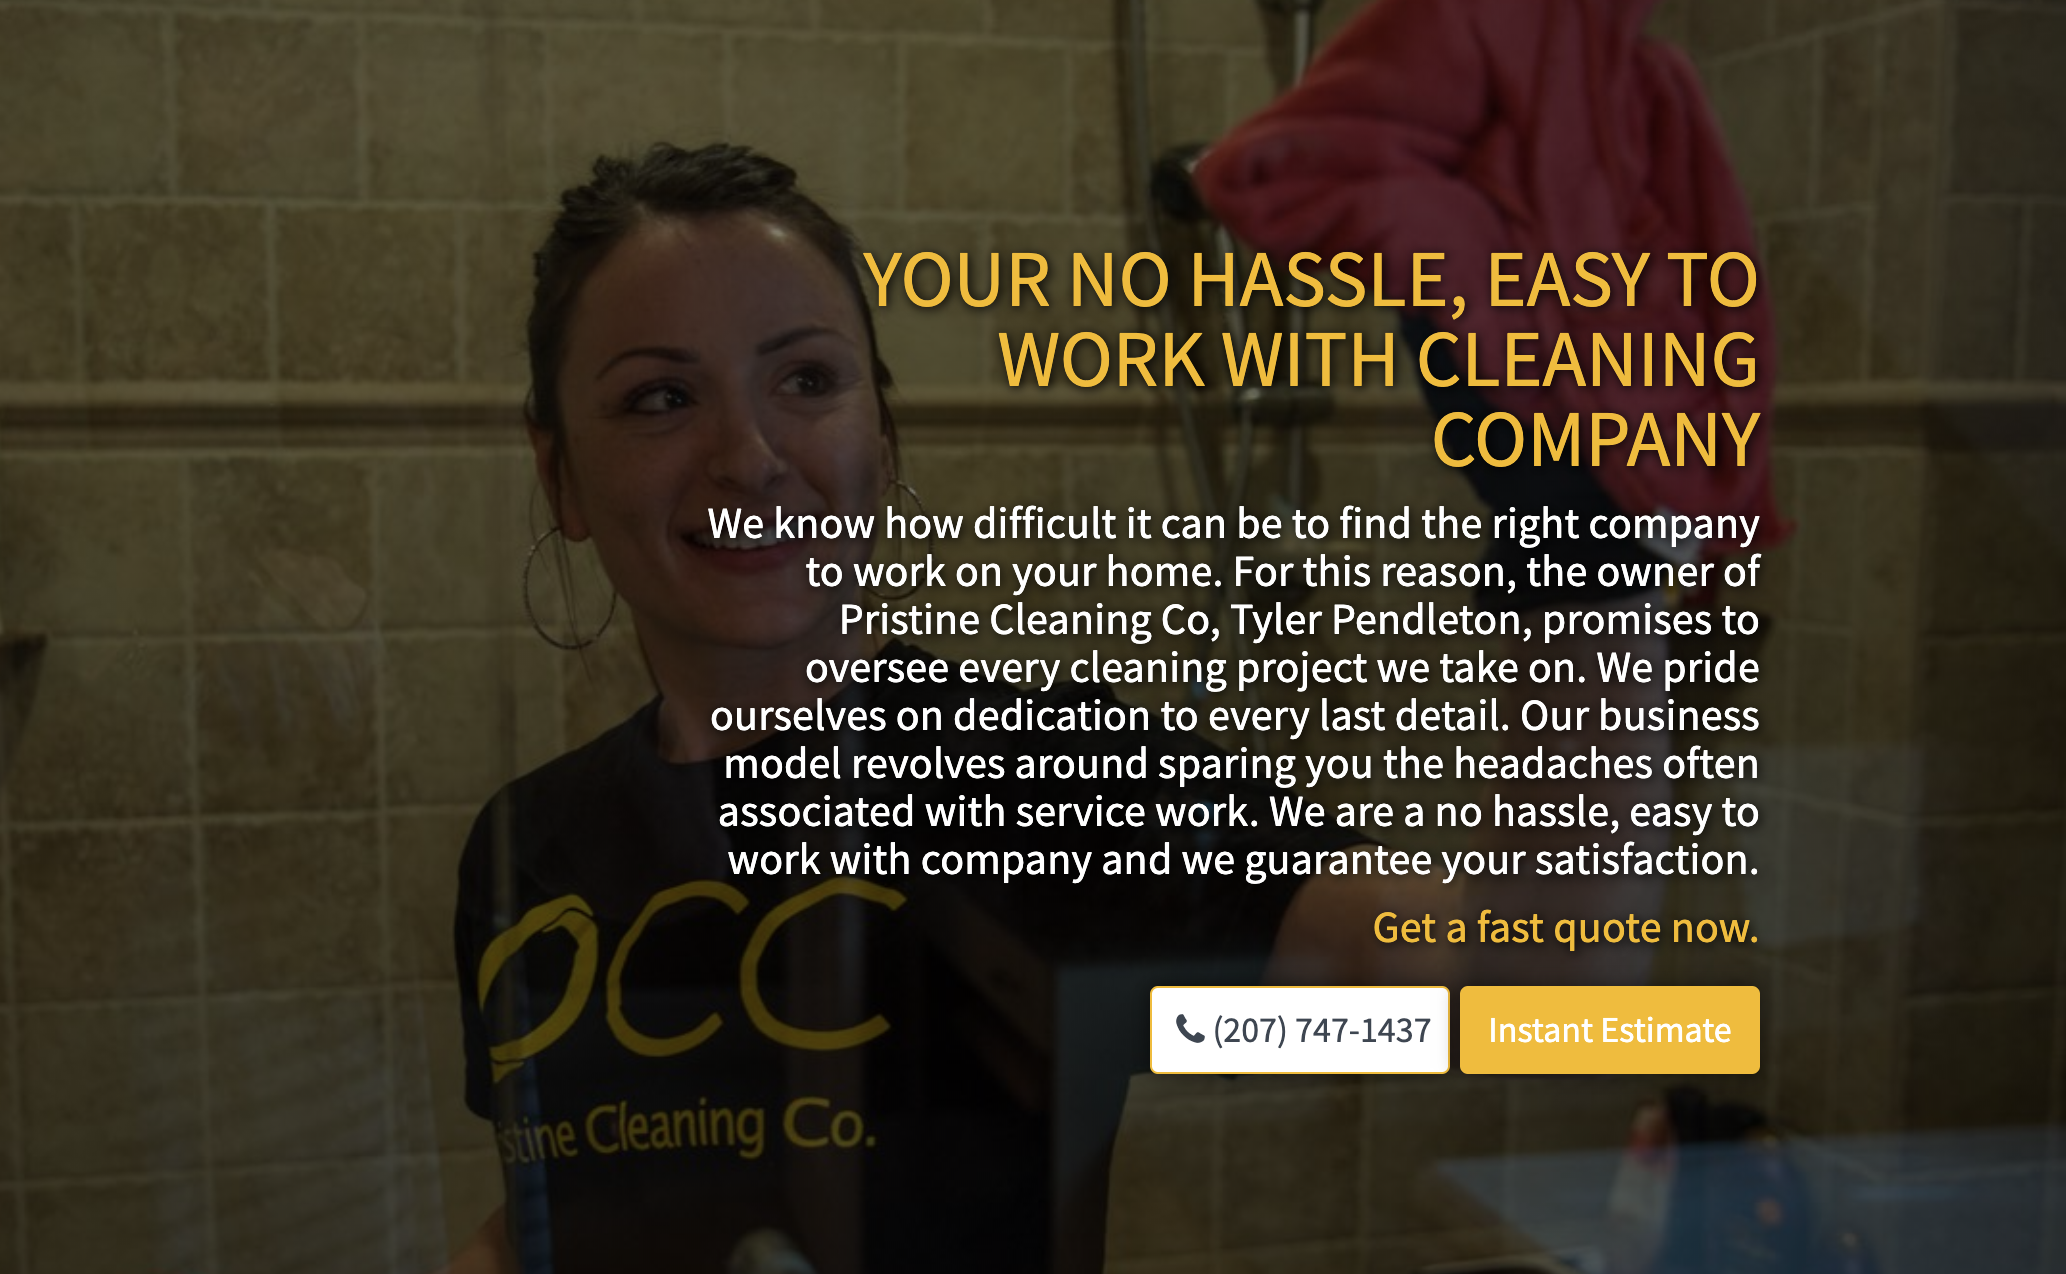 Image taken from Pristine Cleaning Co. website designed by Convert